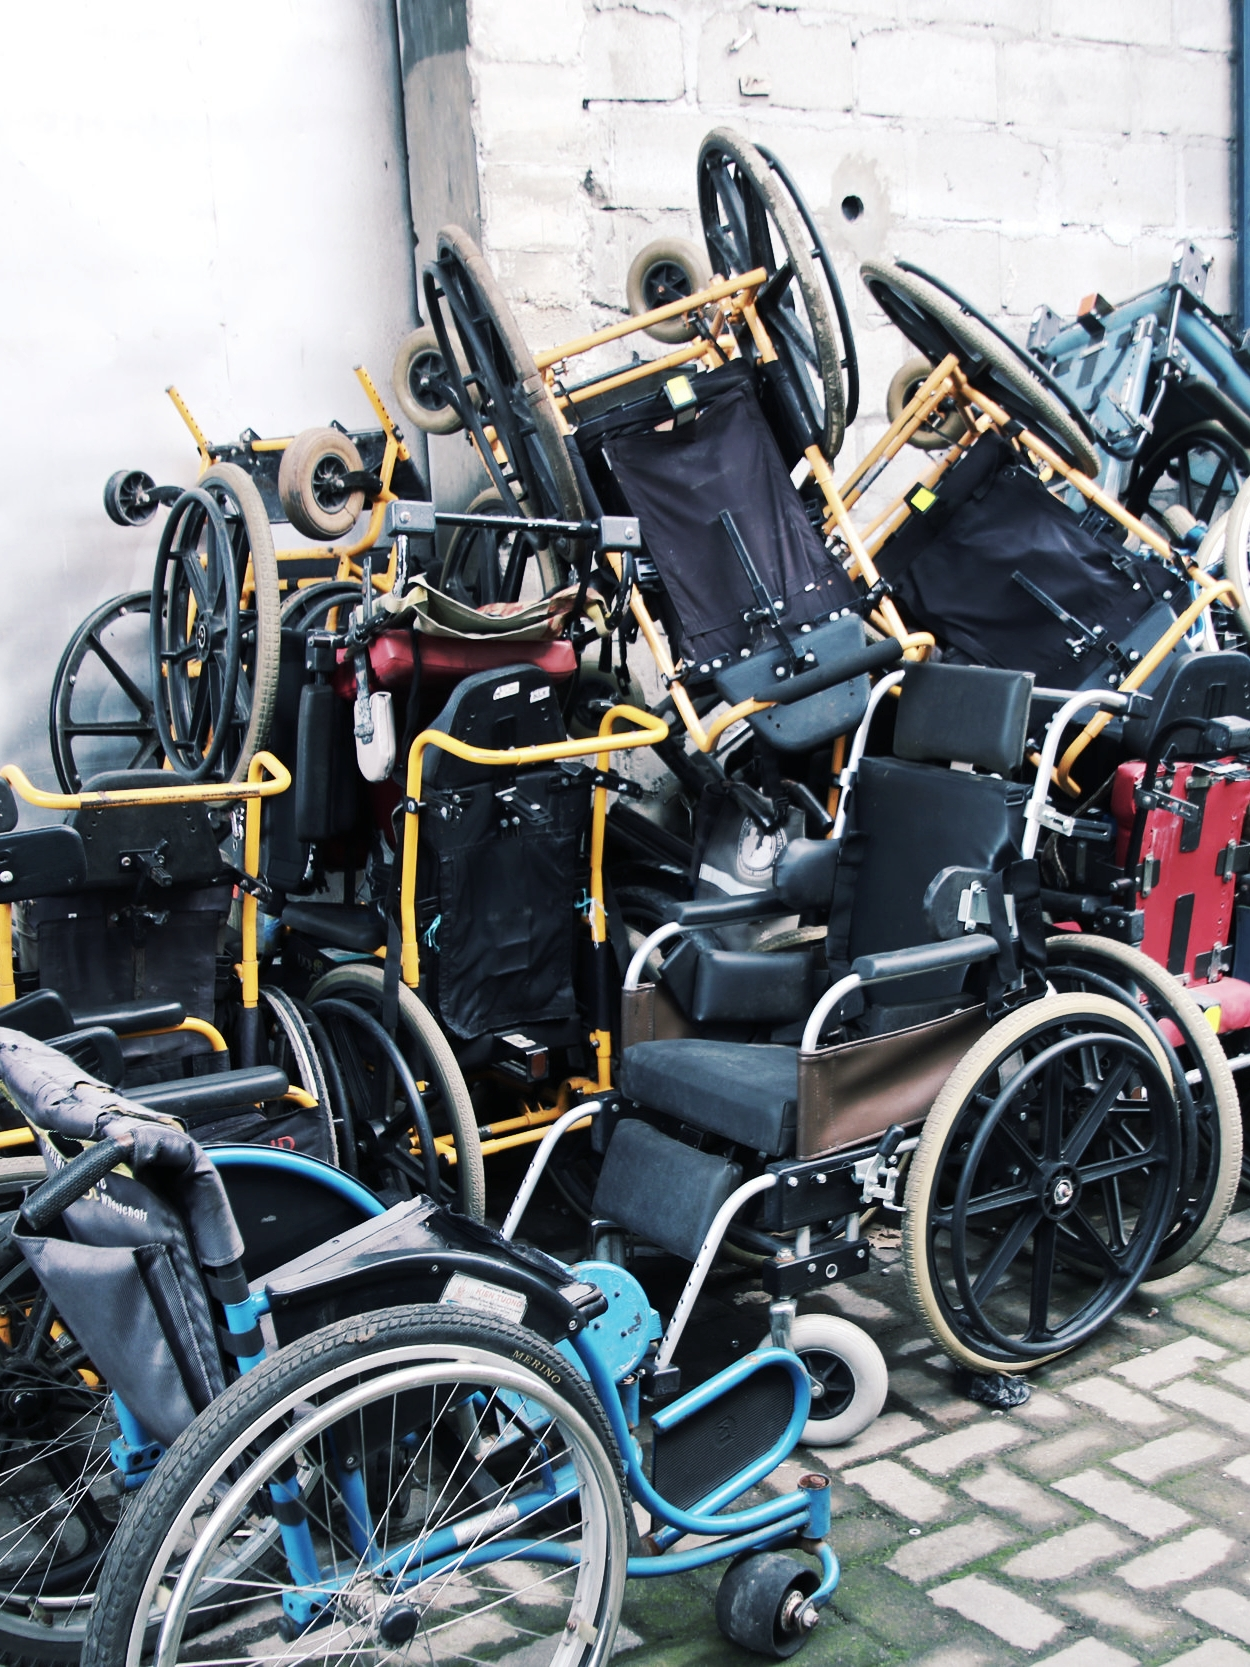 Broken wheelchairs. W ithout proper training, product fit, and maintenance, many wheelchairs end up broken or unused.